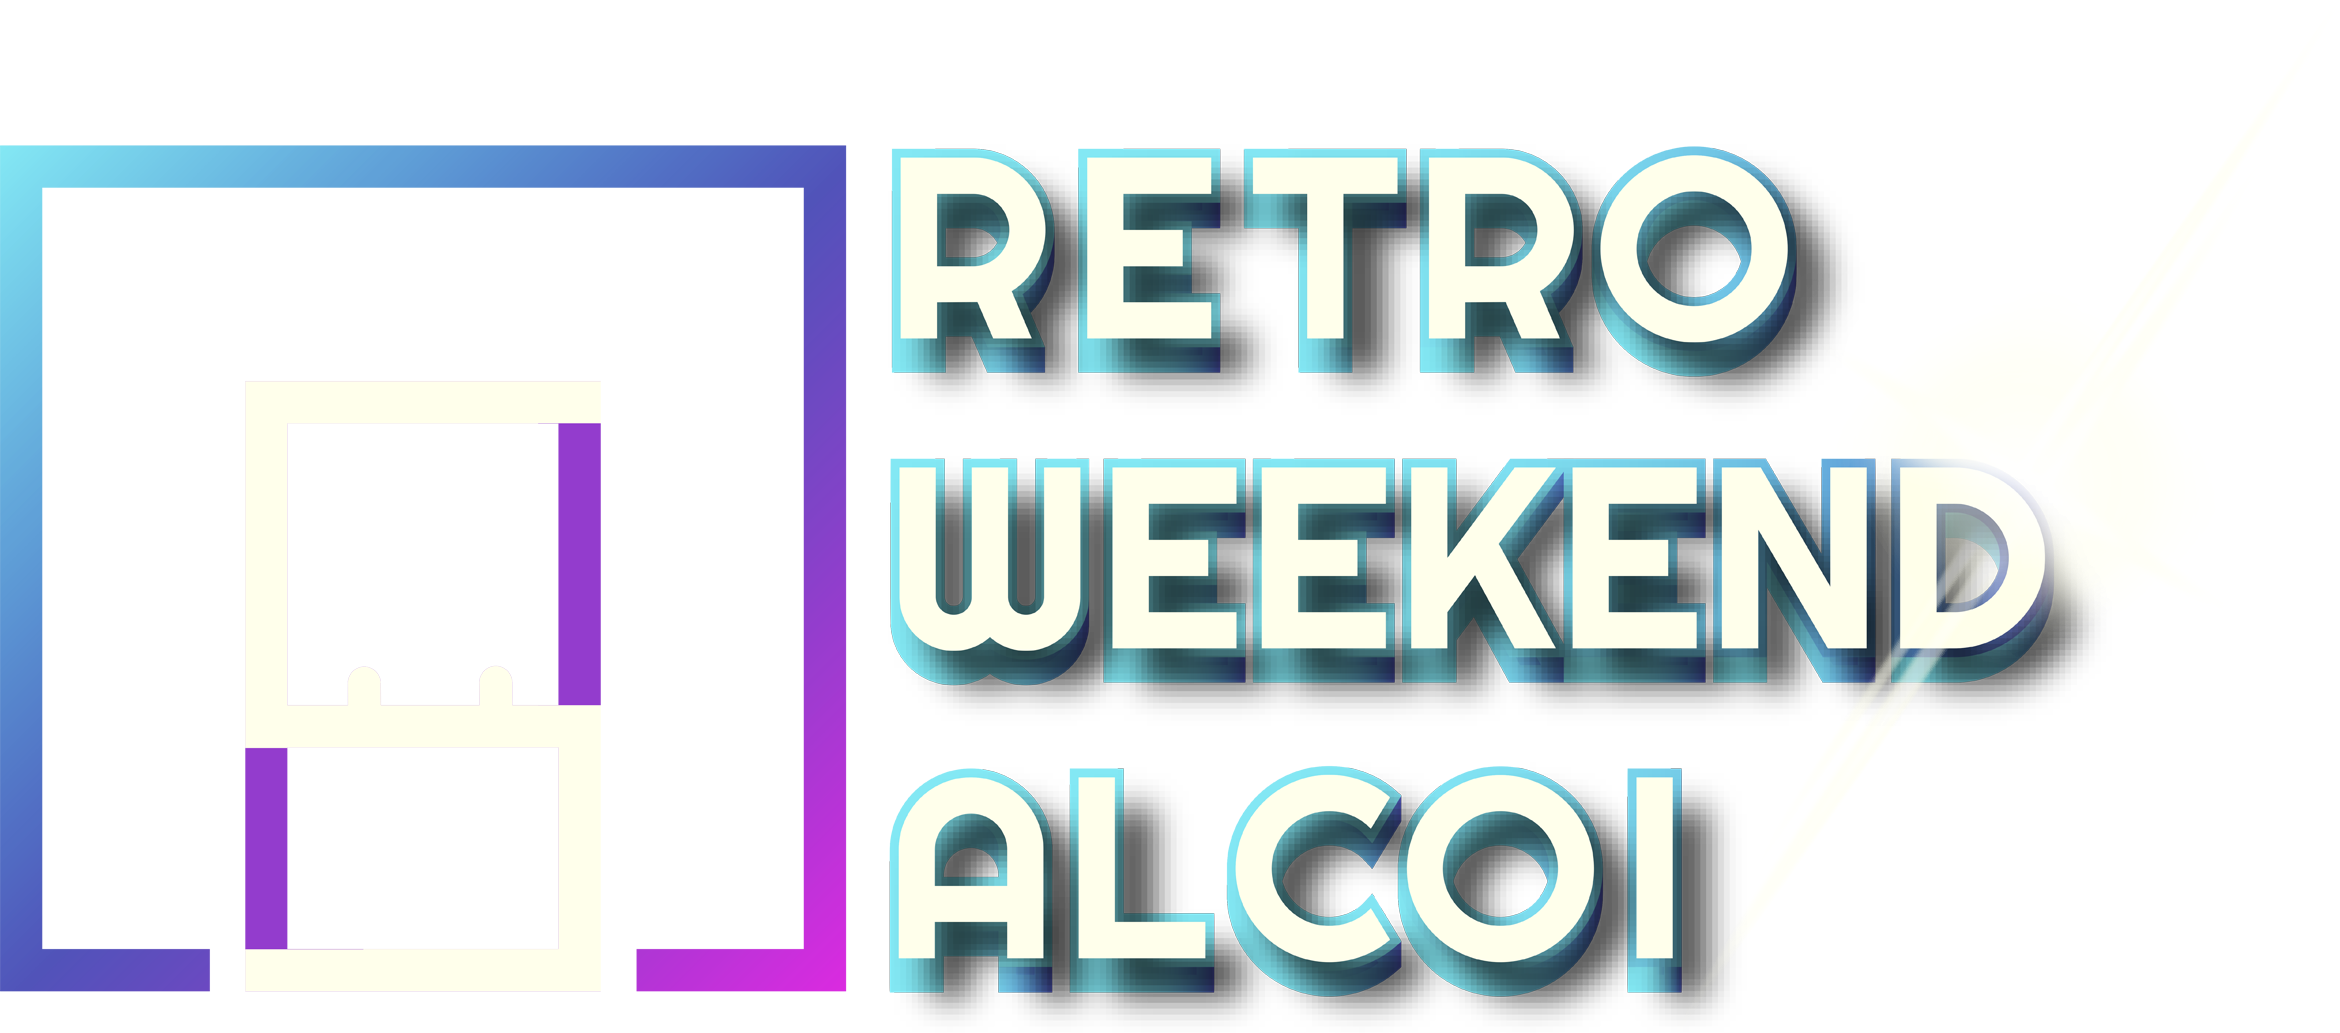 Retroweekend